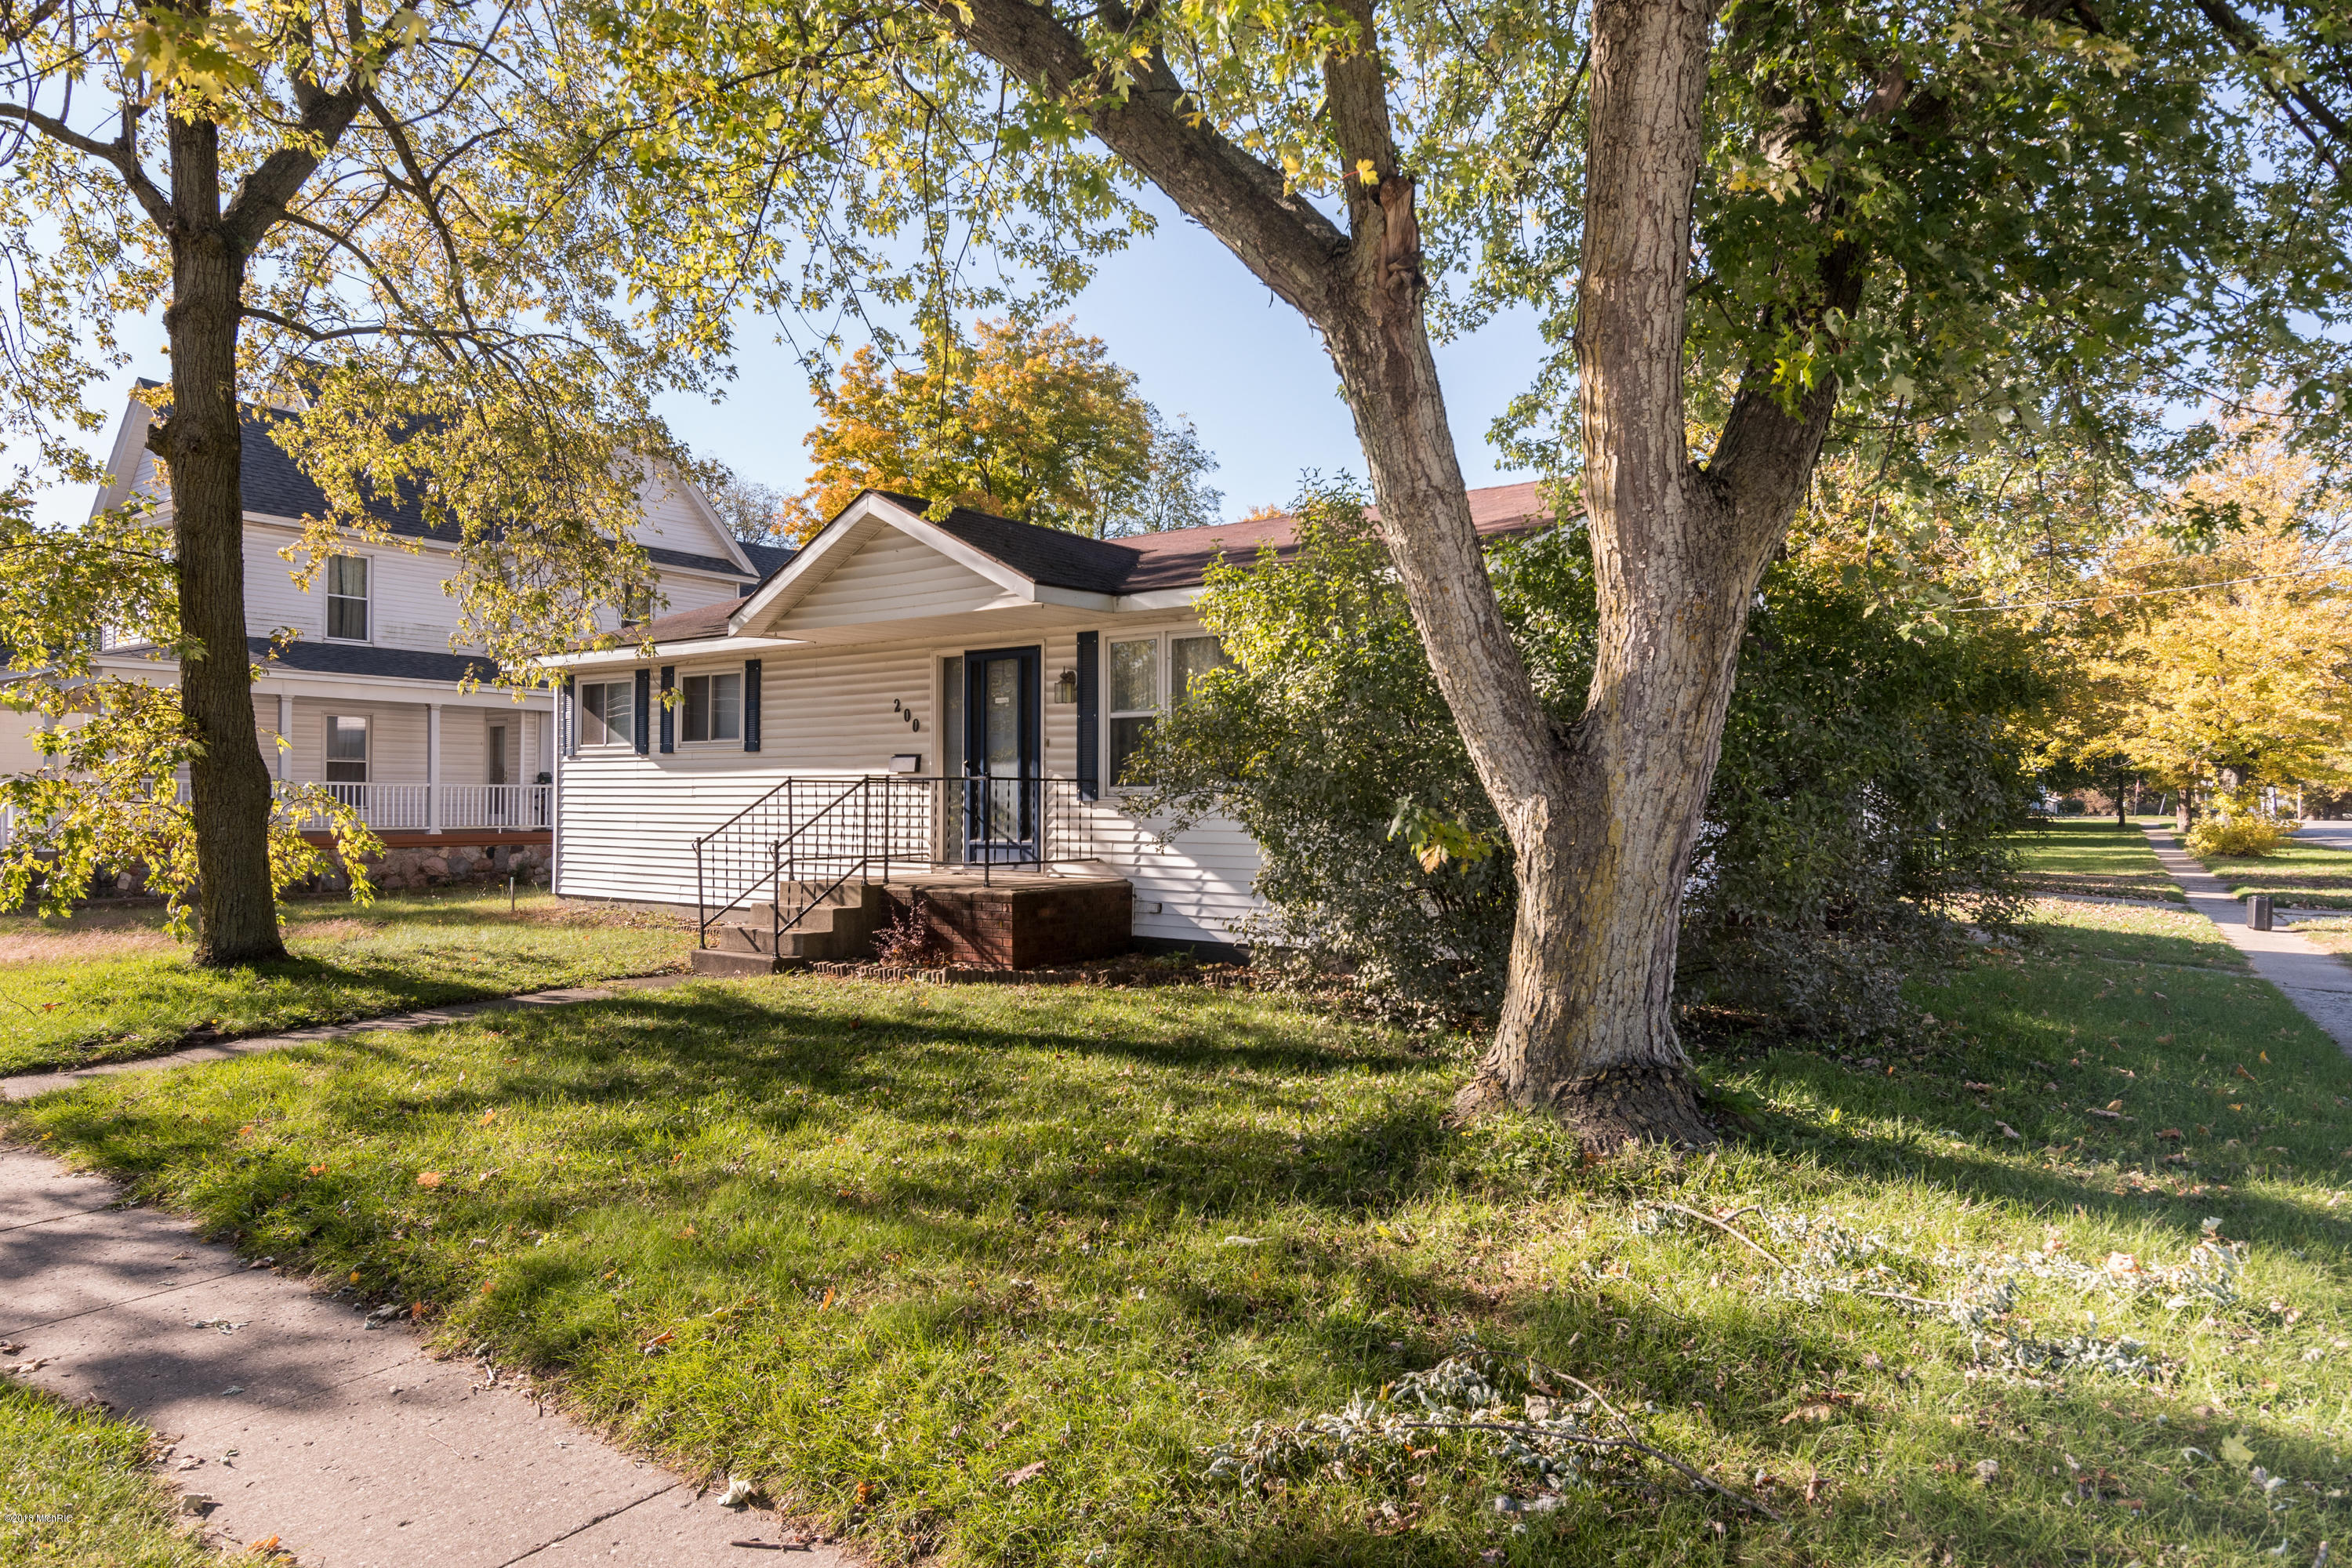 Photo for 200 W Delaware Street, Decatur, MI 49045 (MLS # 18052039)